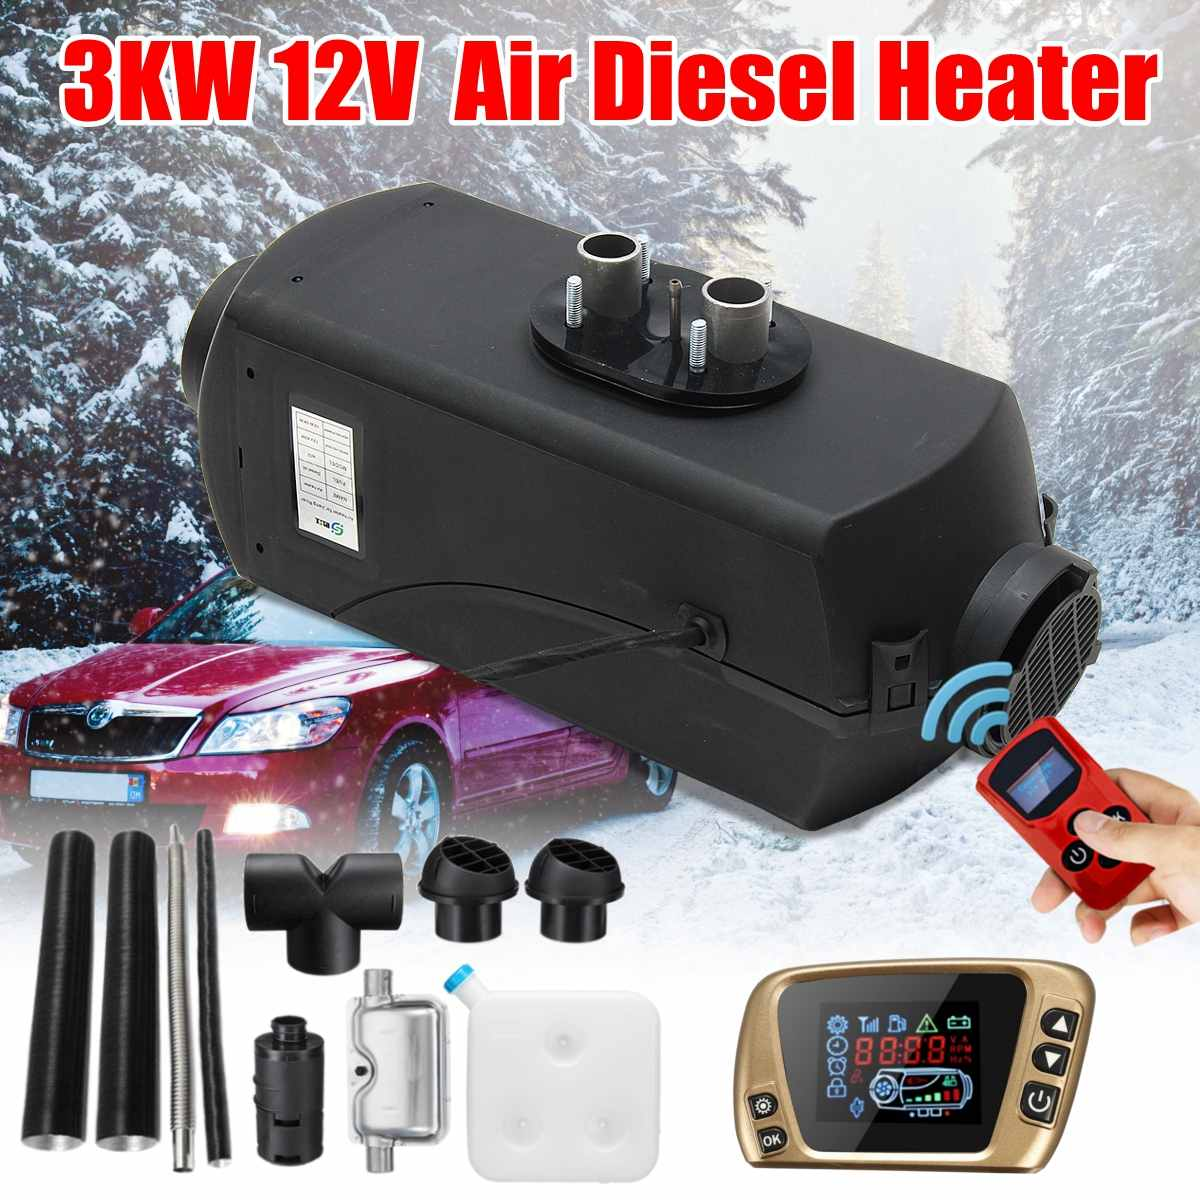 12V 3KW 3000W Air Diesel Heater LCD Thermostat For Car Trucks Boat Bus Trailer